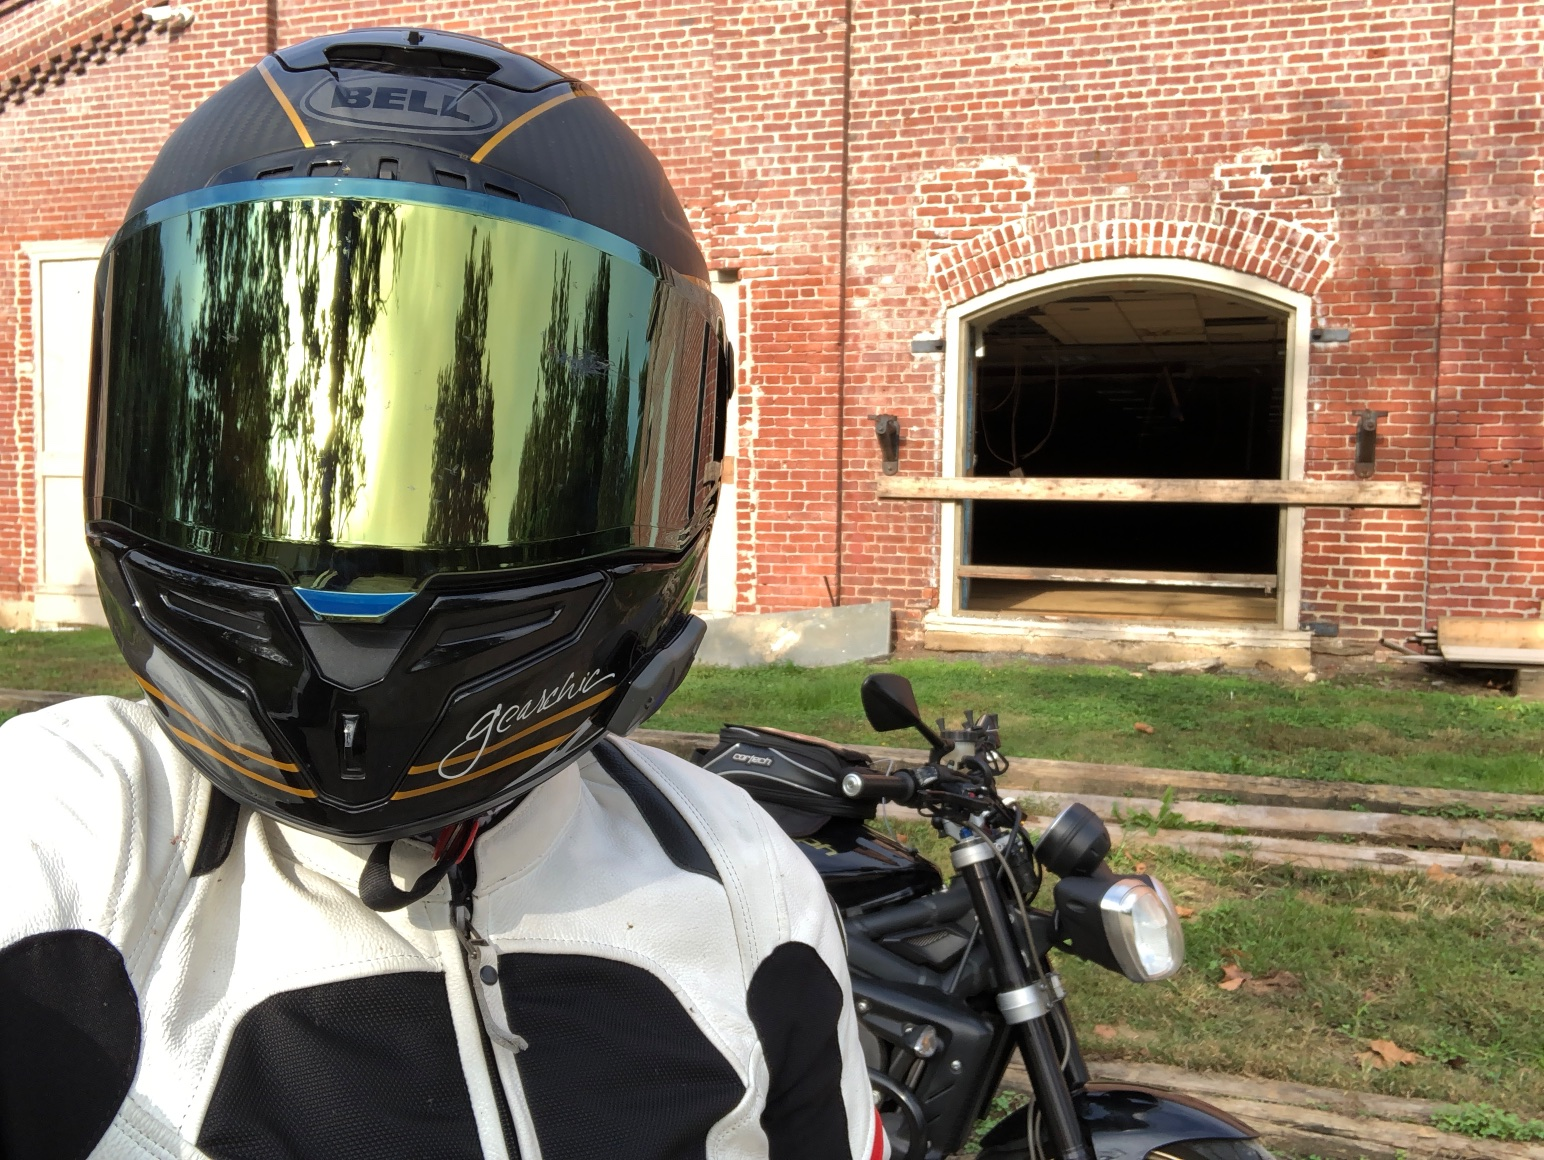 62bbc7d5c Real Advice about Women's Motorcycle Gear by GearChic.com — GearChic